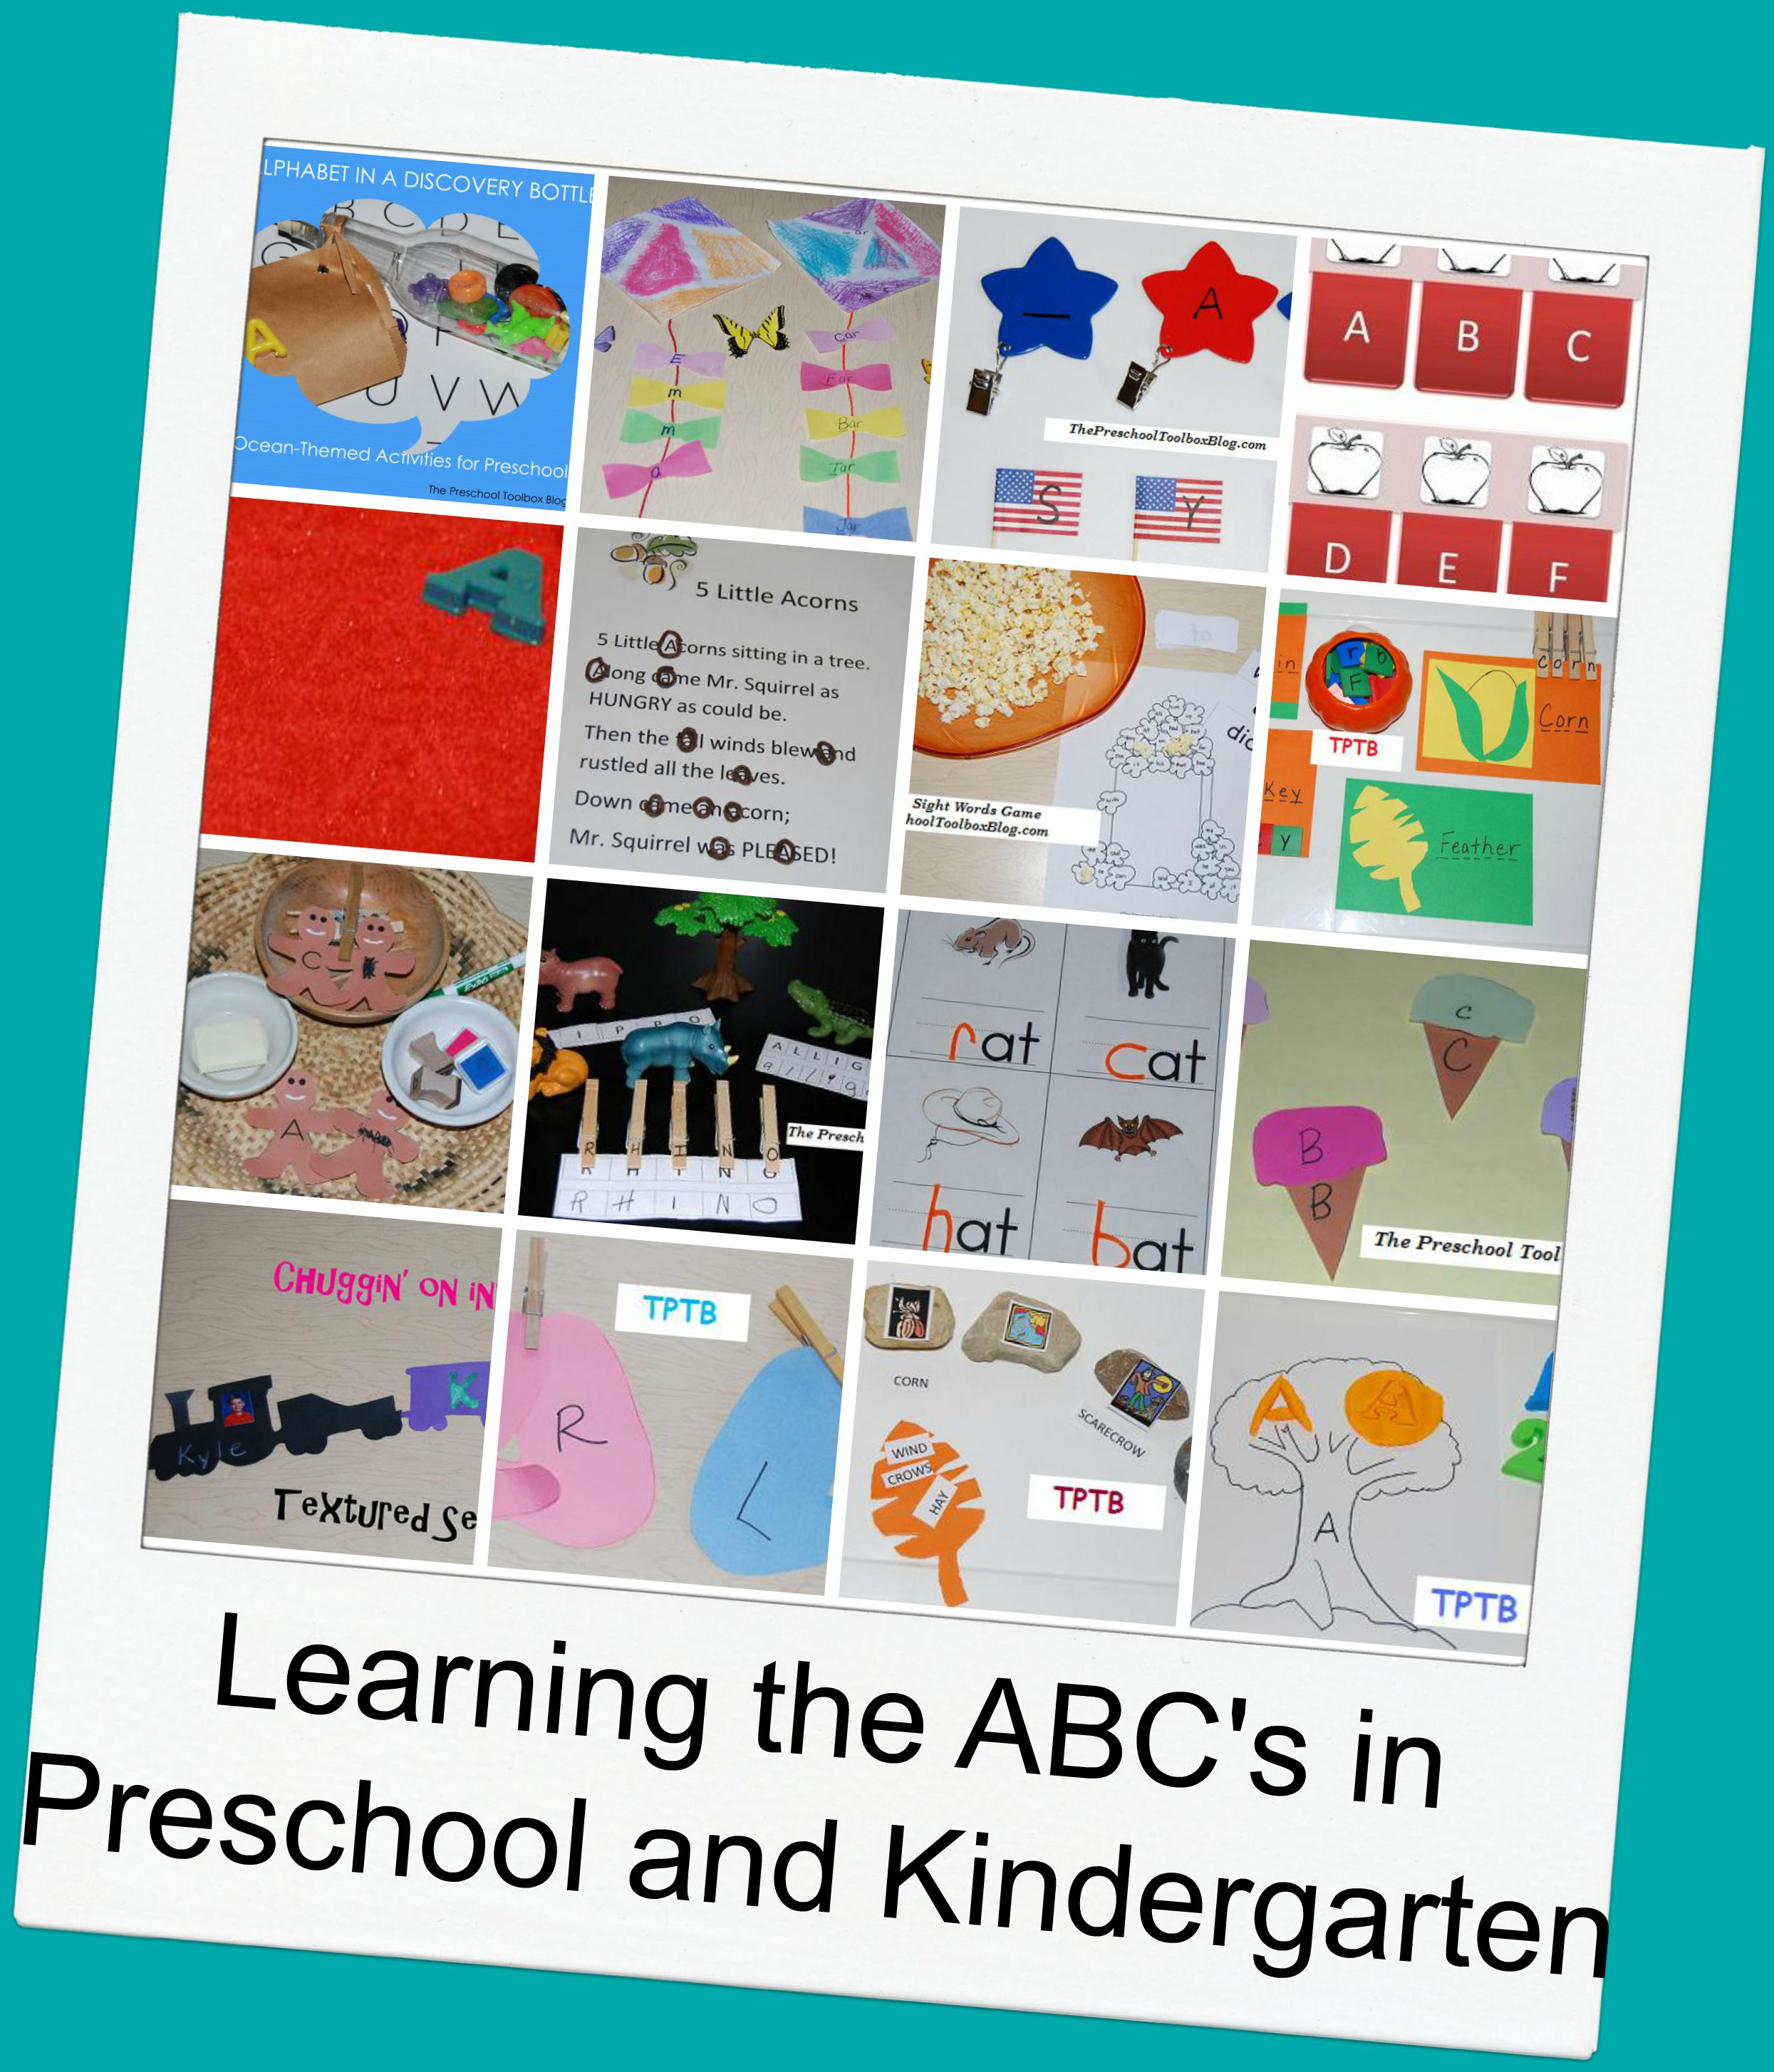 Playful Learning for Teaching the ABC's in Preschool and Kindergarten